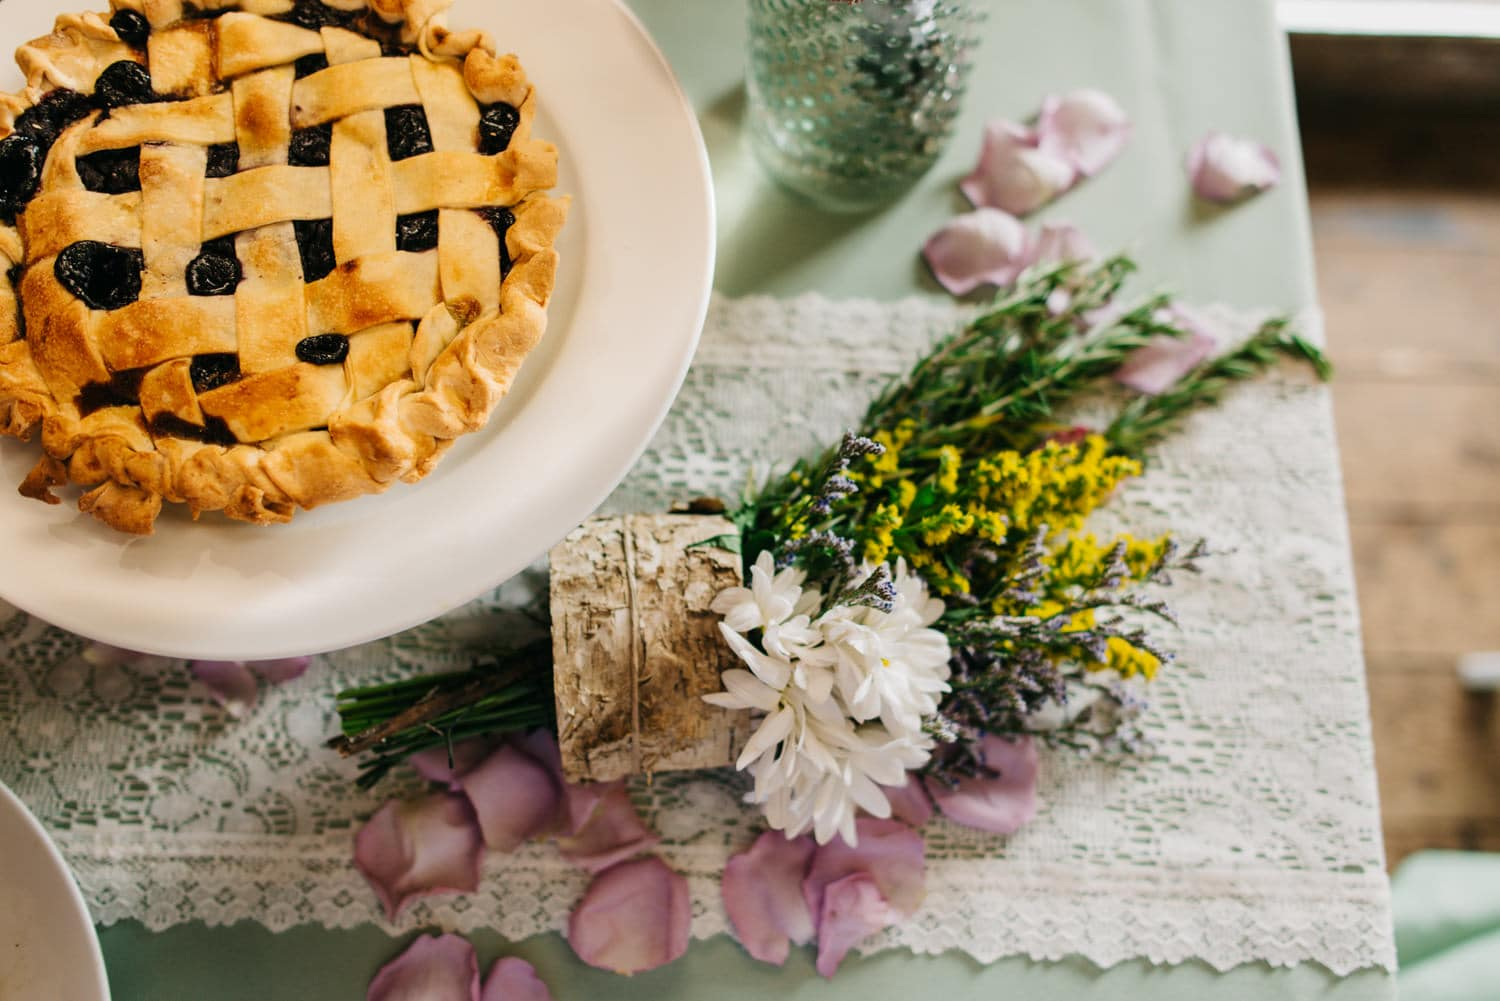 Private chef catering a pie and some flowers on a table